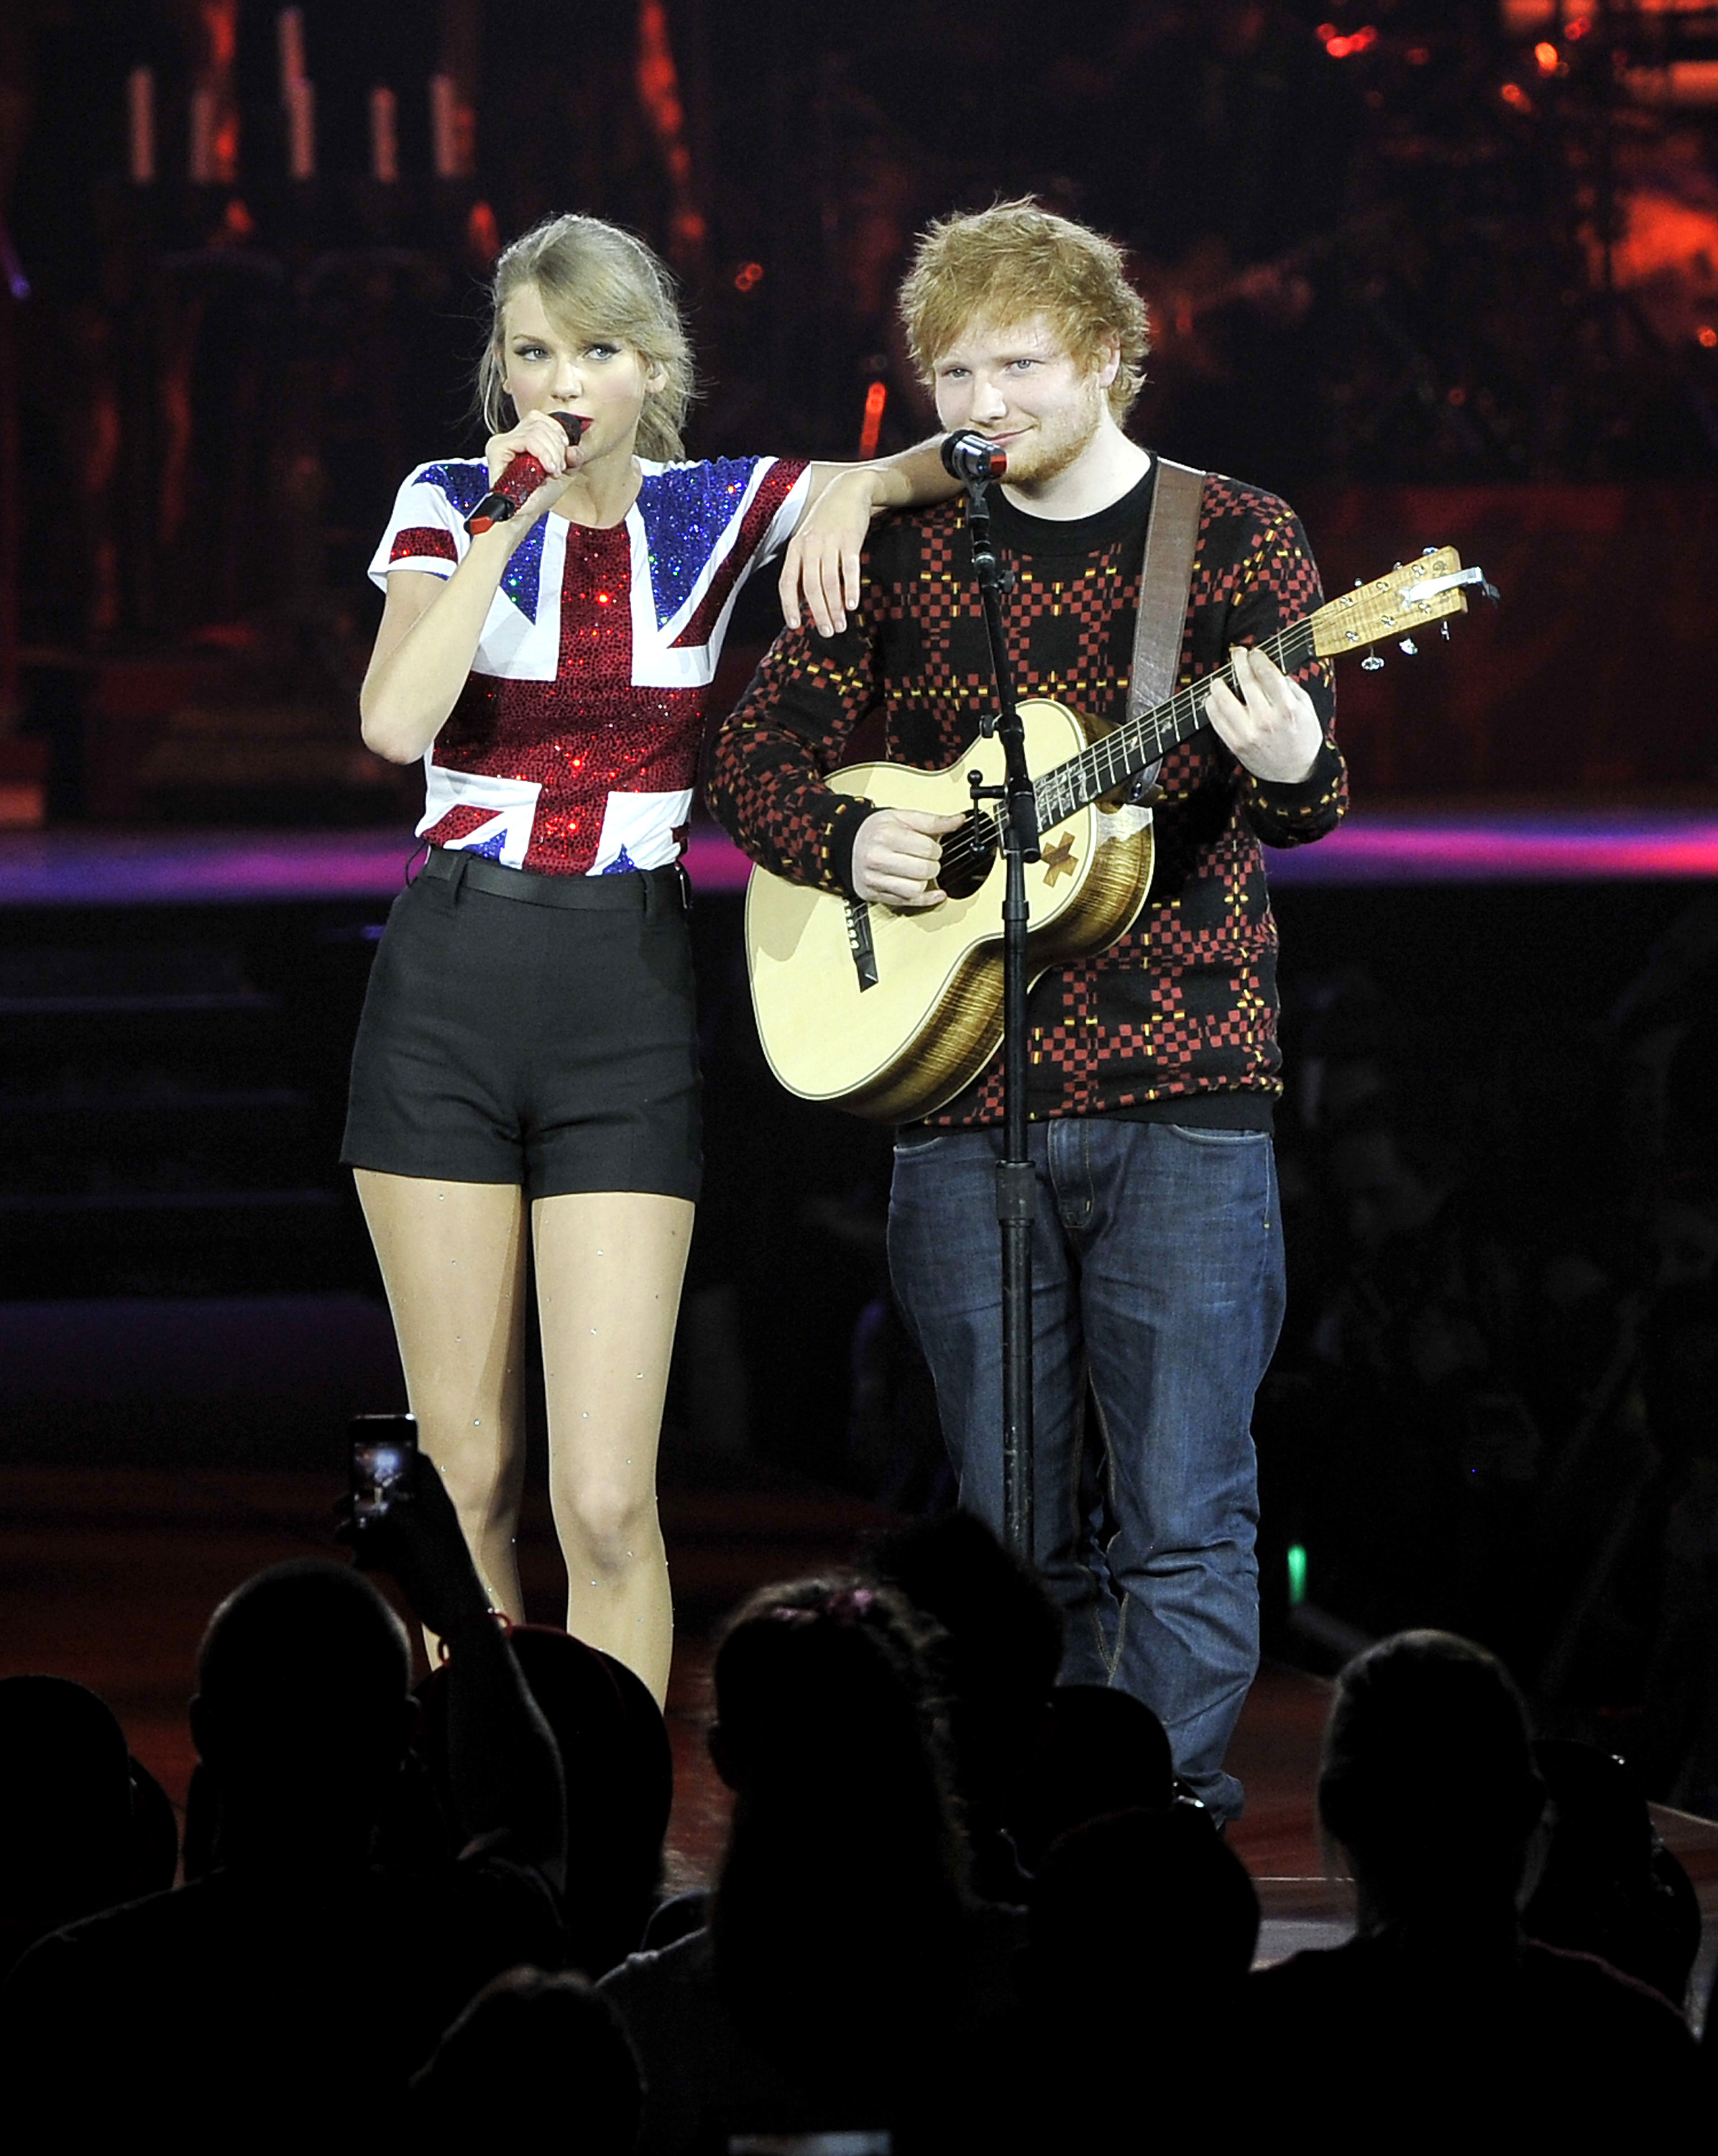 Taylor Swift was joined on stage by Ed Sheeran as she kicked off the European leg of her blockbuster The RED Tour with the first of five sold-out shows at London's O2 Arena, playing to a capacity crowd of more than 15,500 fans,  on February 1, 2014 in London, England.